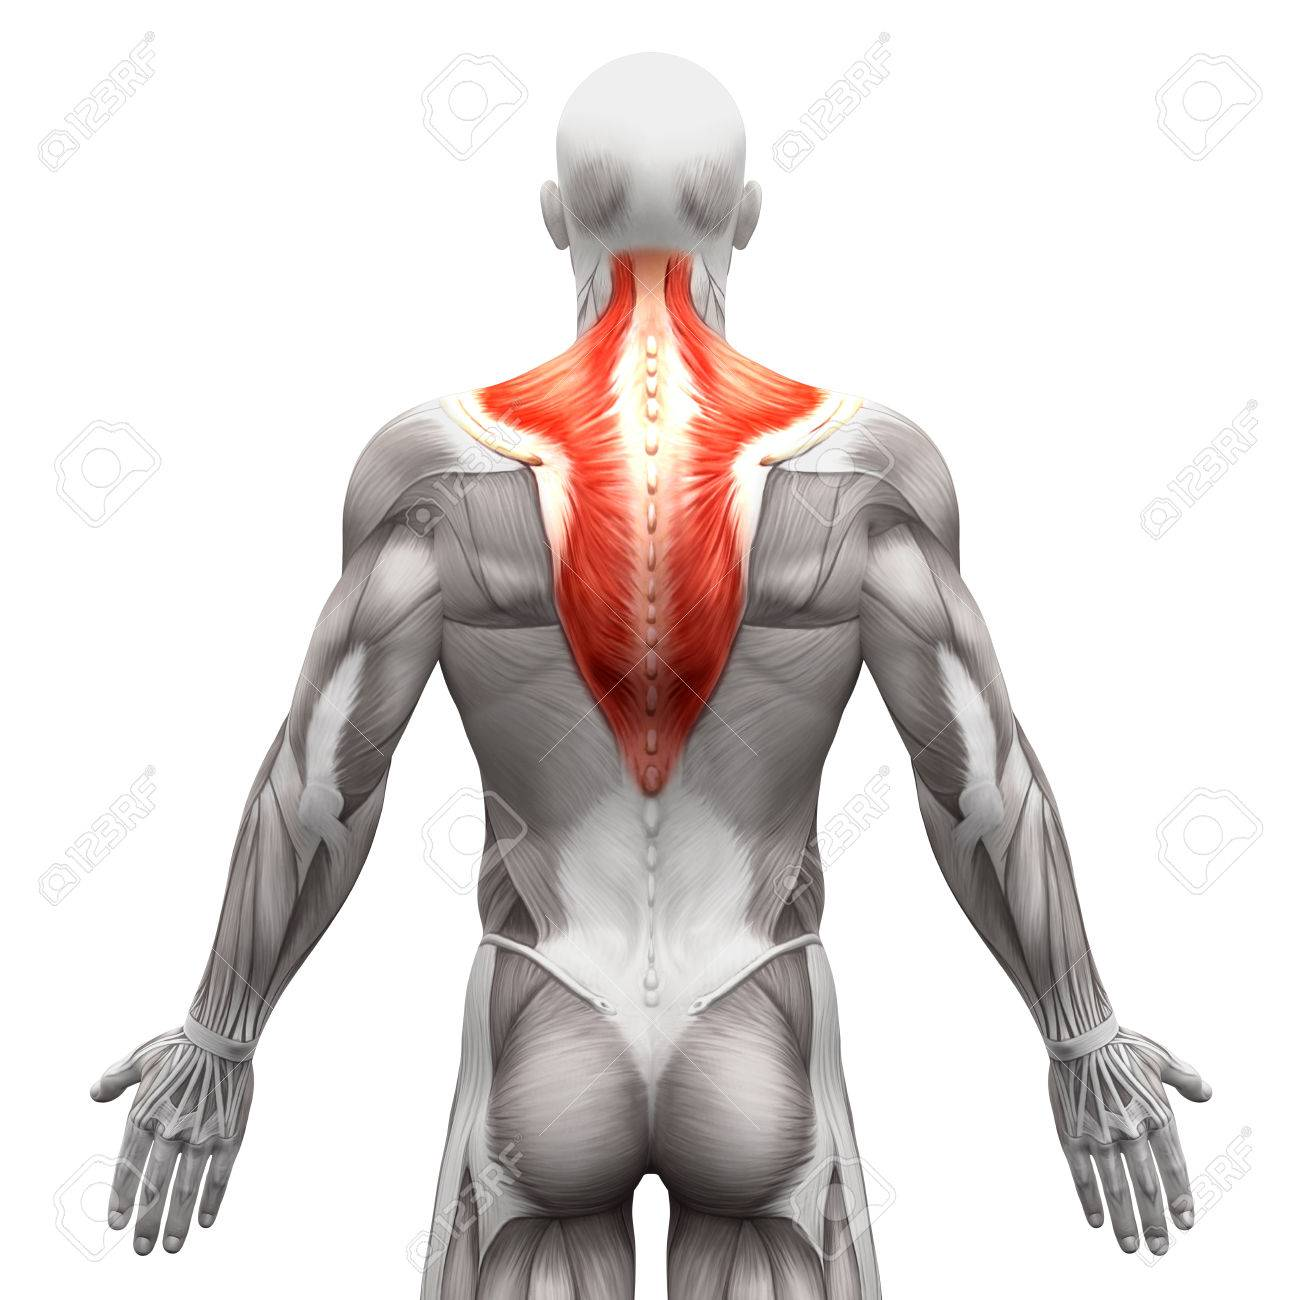 Trapezius Muscle - Anatomy Muscles Isolated On White - 3D ...